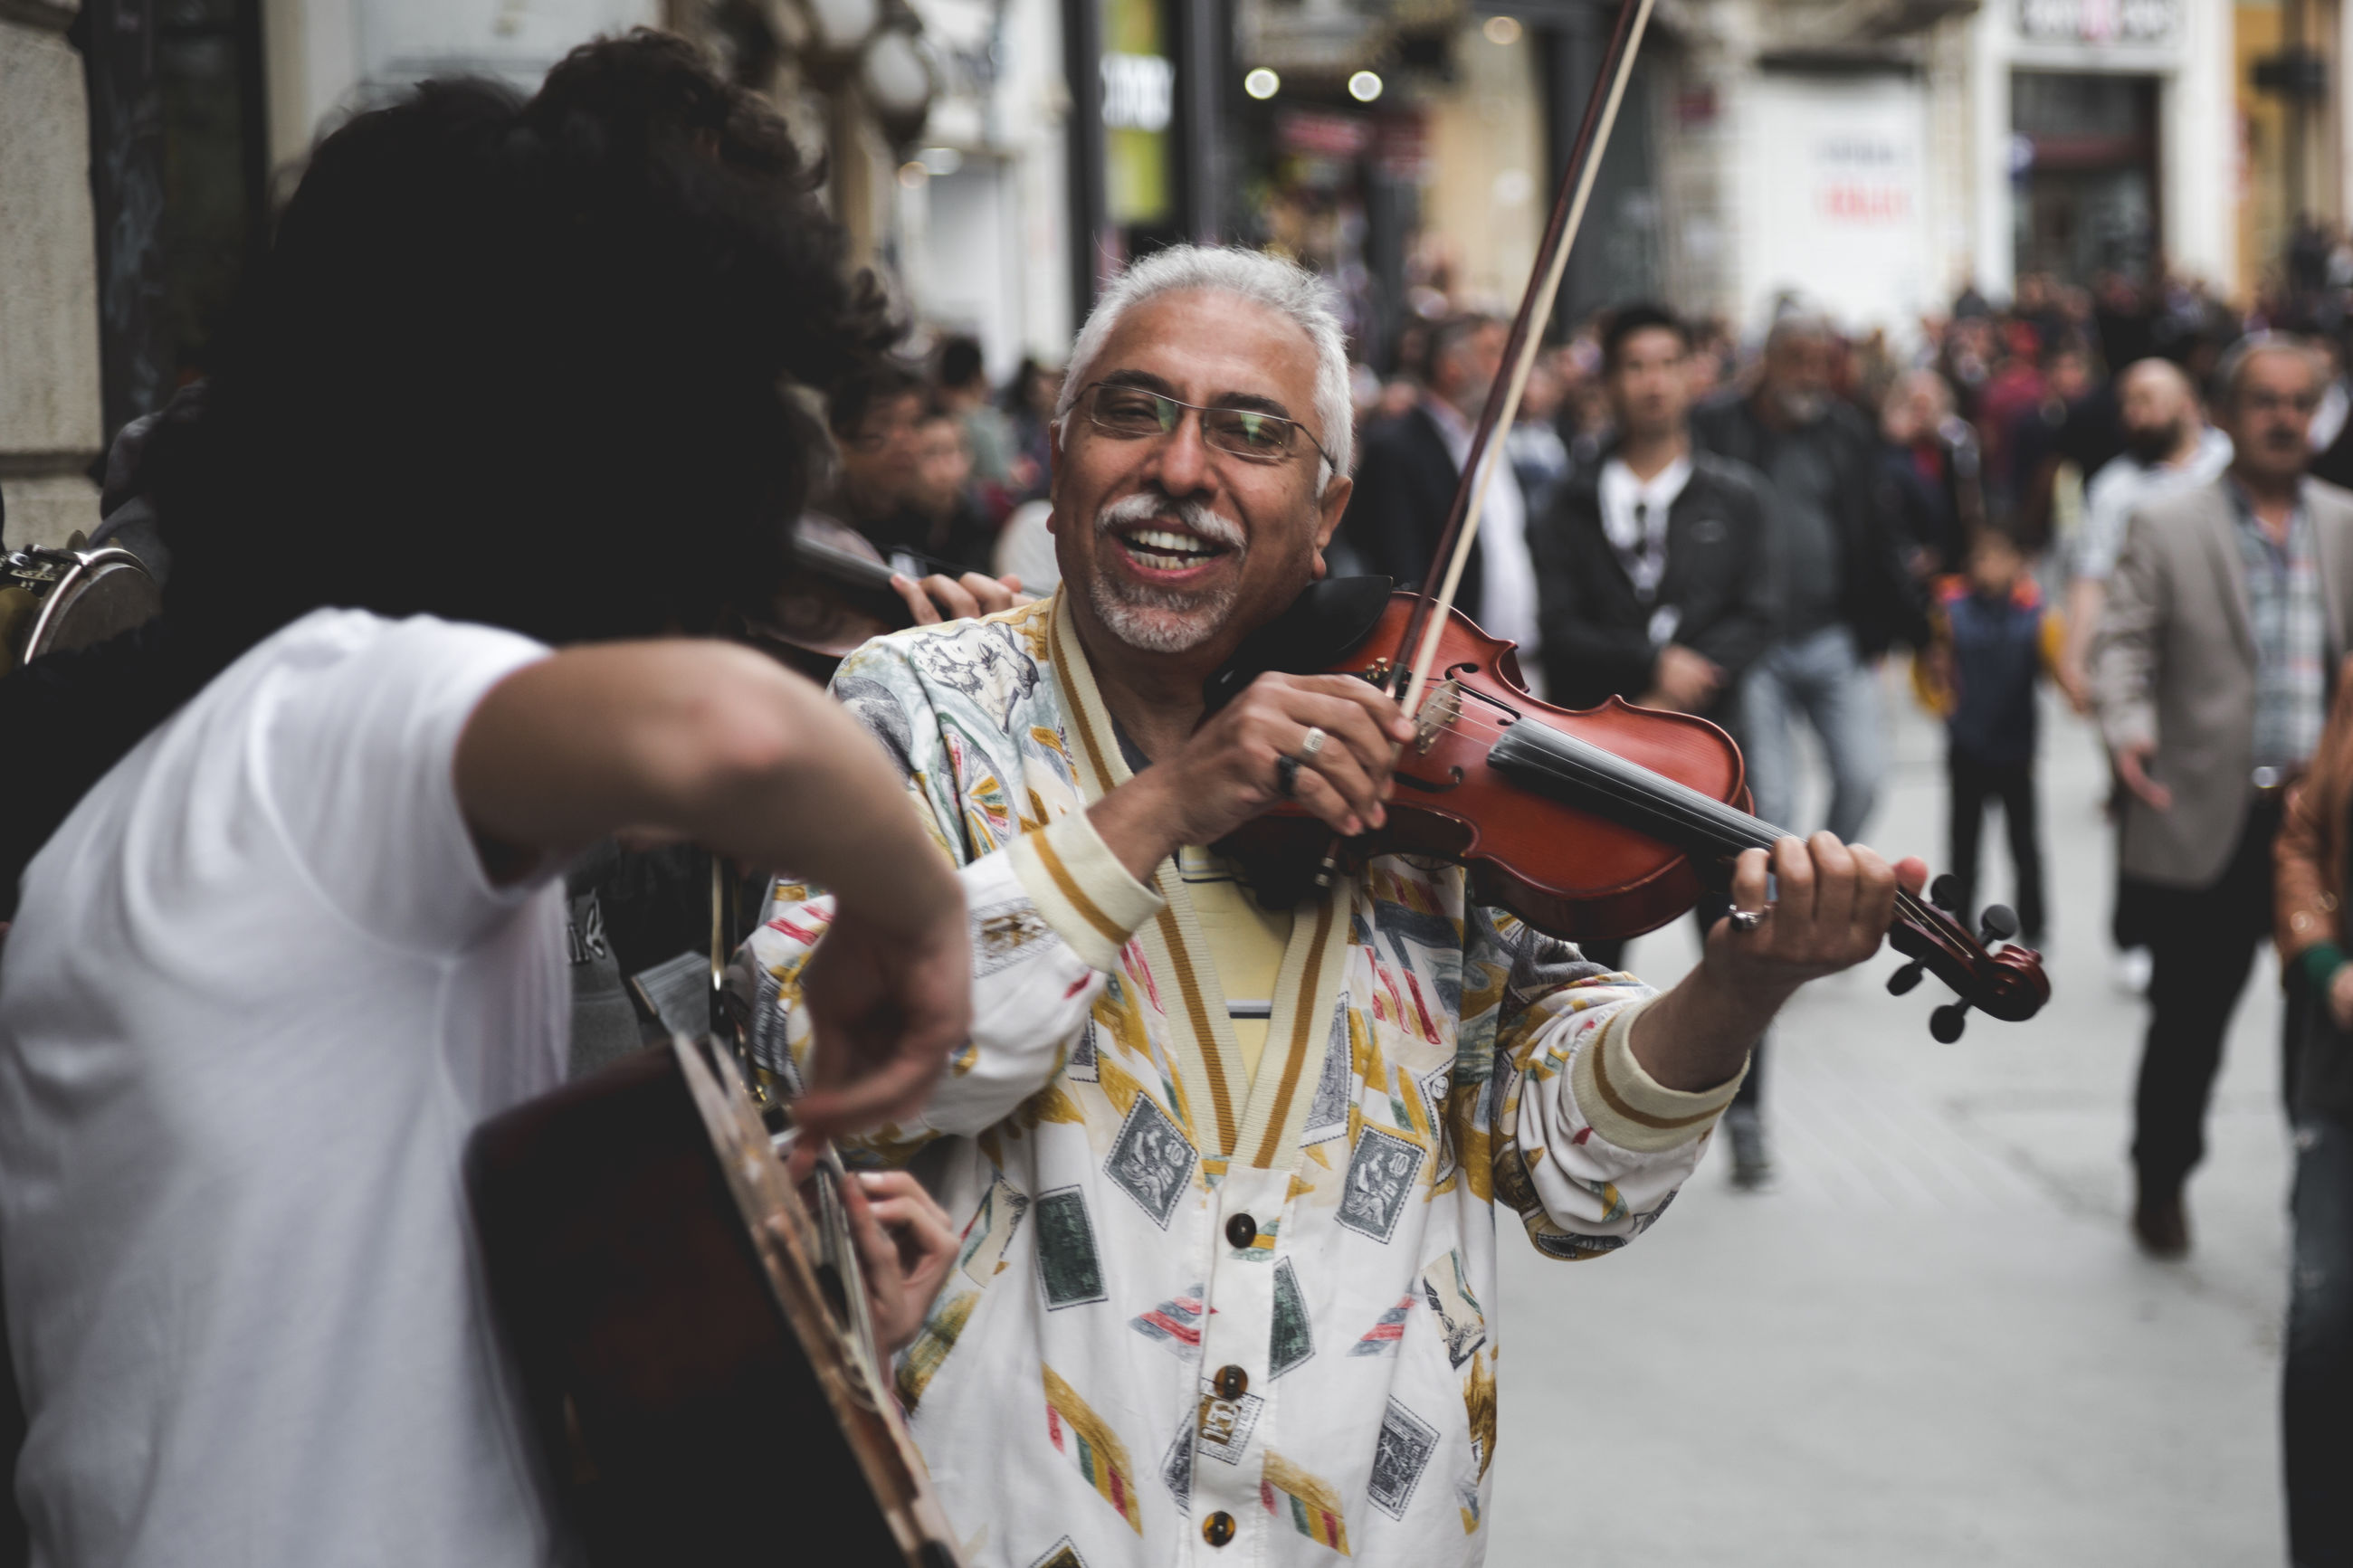 music, real people, musician, musical instrument, arts culture and entertainment, playing, togetherness, men, senior adult, performance, leisure activity, two people, holding, violin, standing, lifestyles, outdoors, day, adult, people